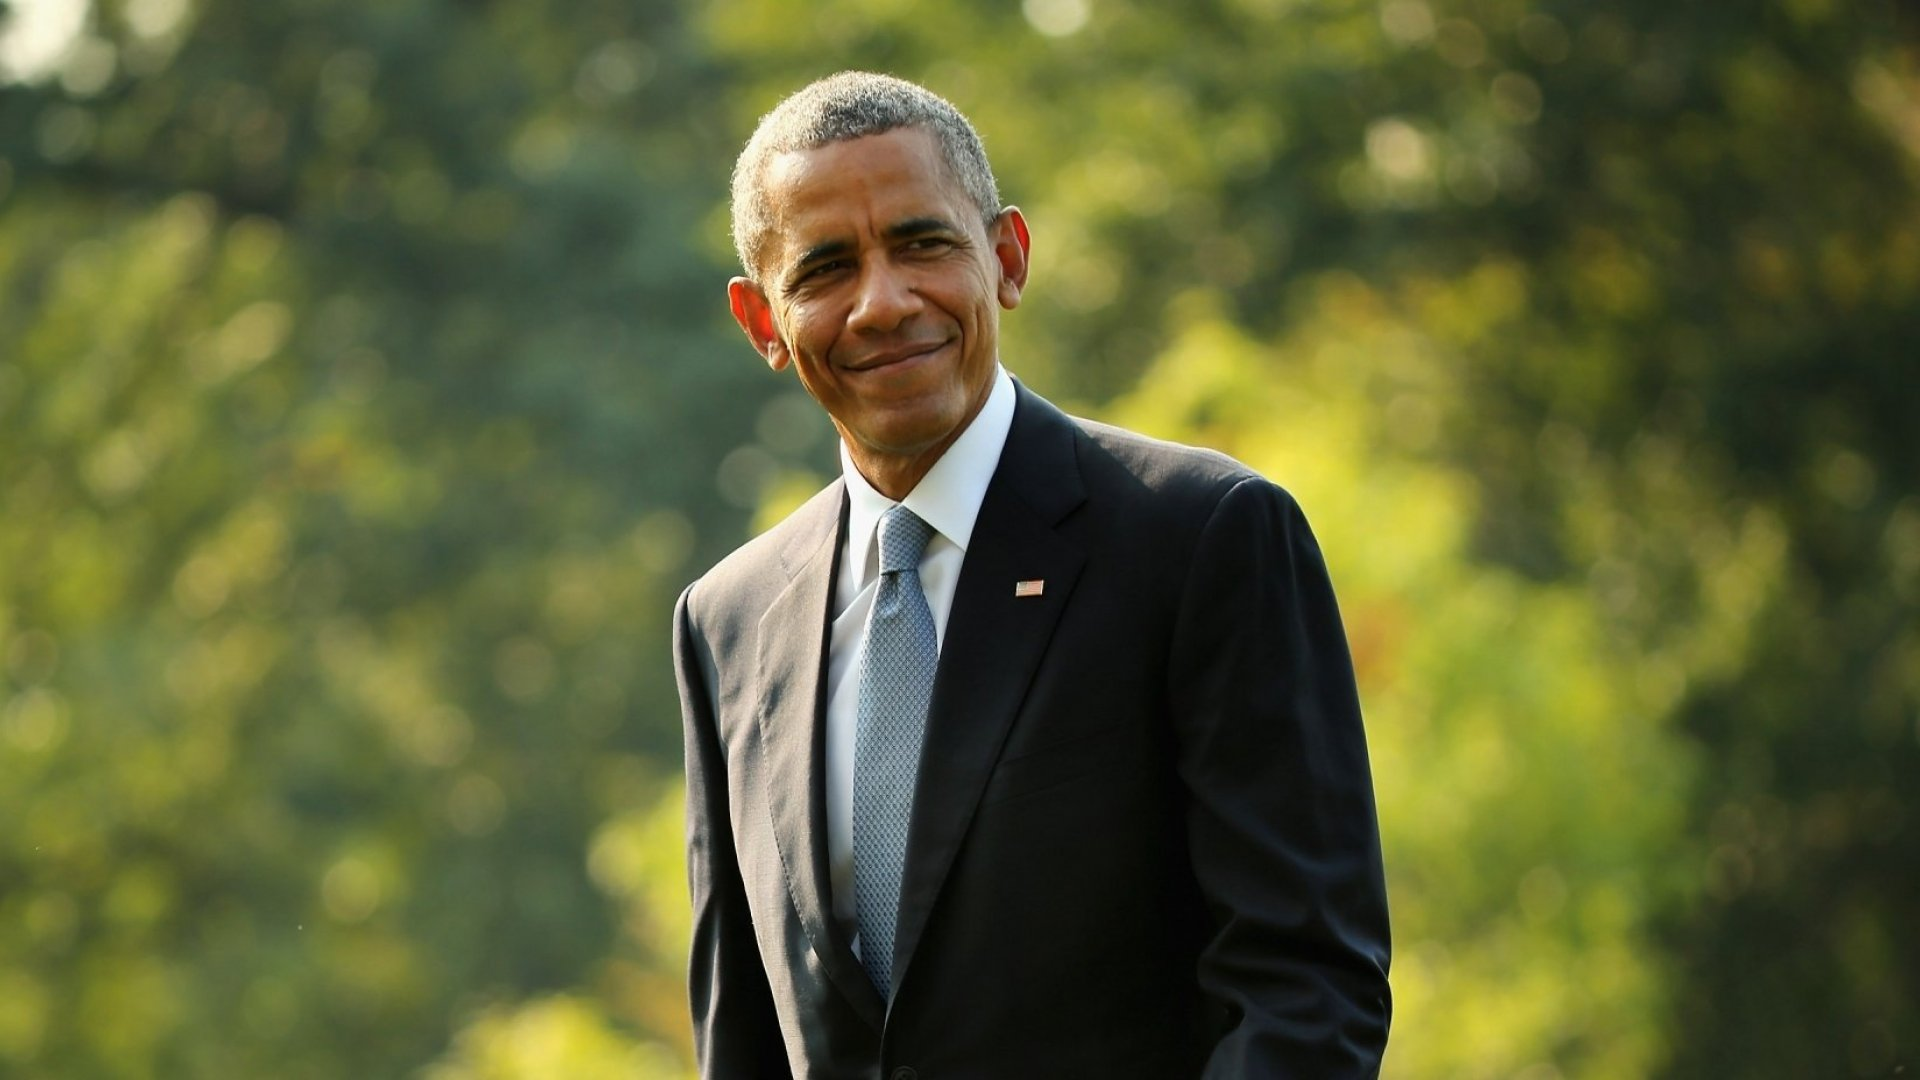 President Barack Obama Just Revealed His Summer Reading List (Have You Read Any of These 11 Books Yet?)